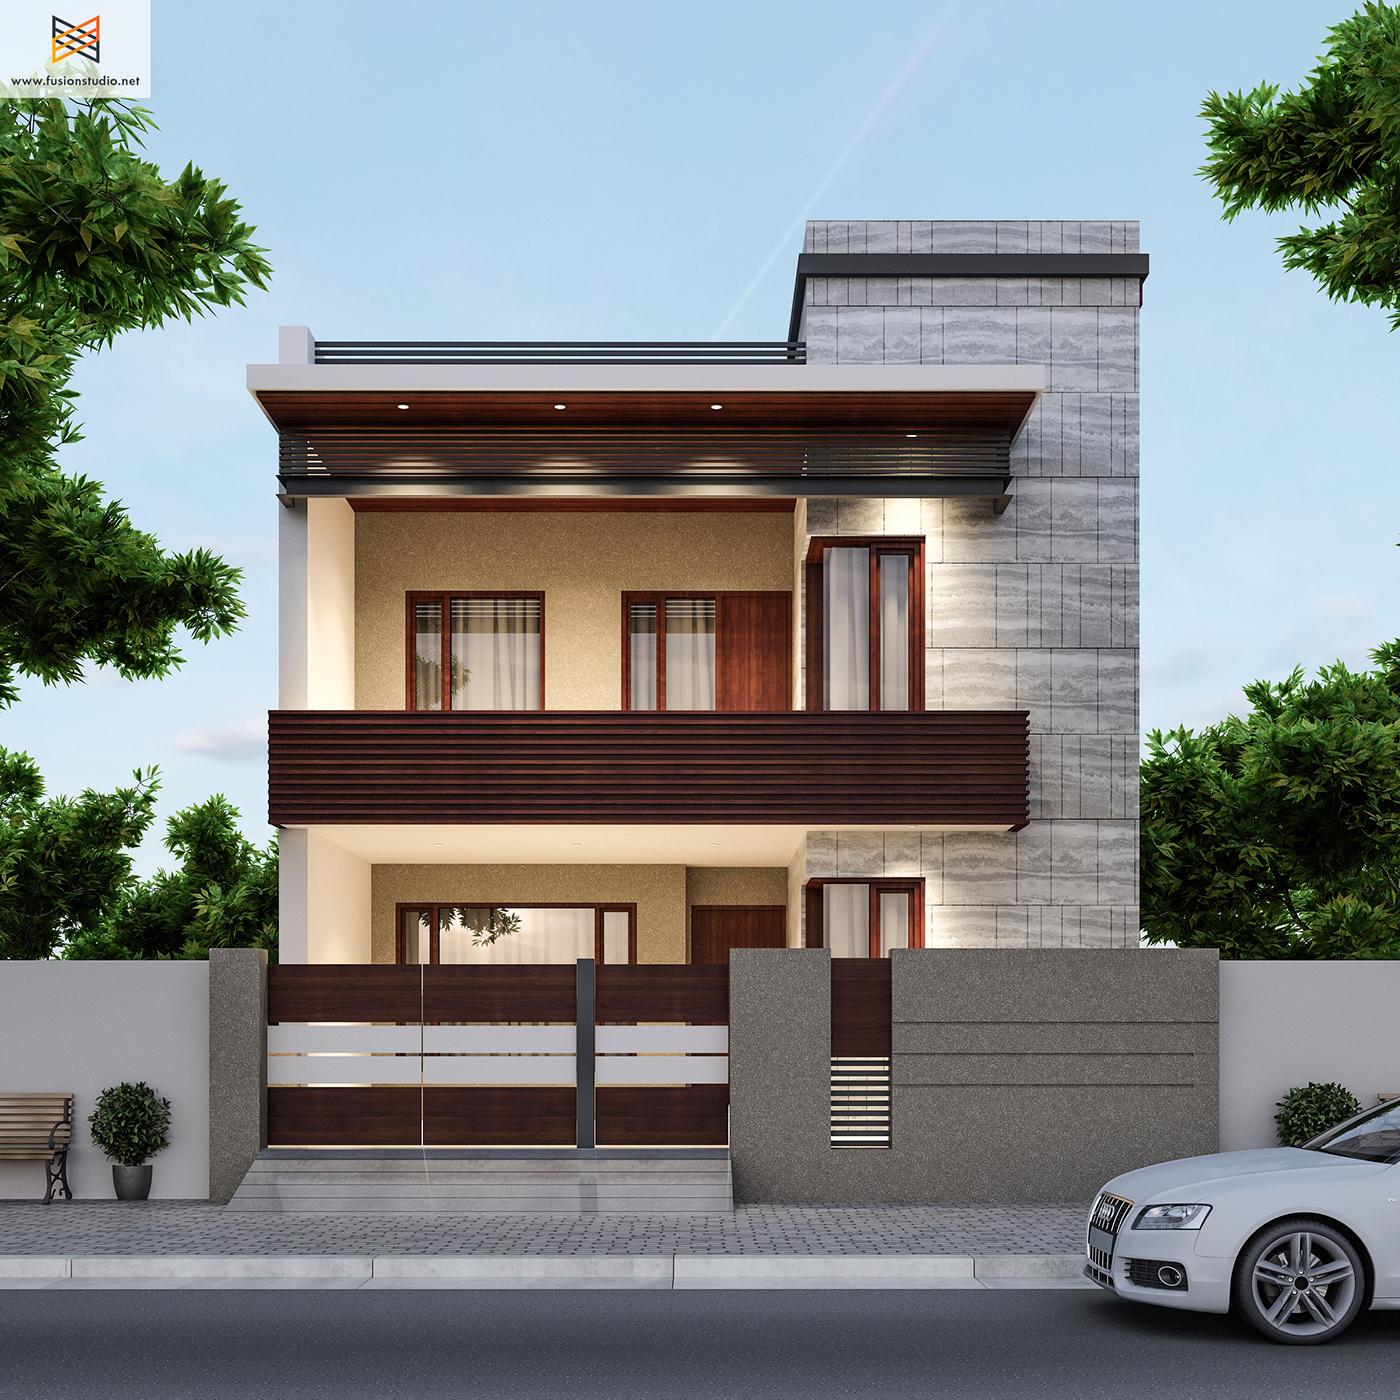 250 yards house elevation on behance Best home designs of 2014